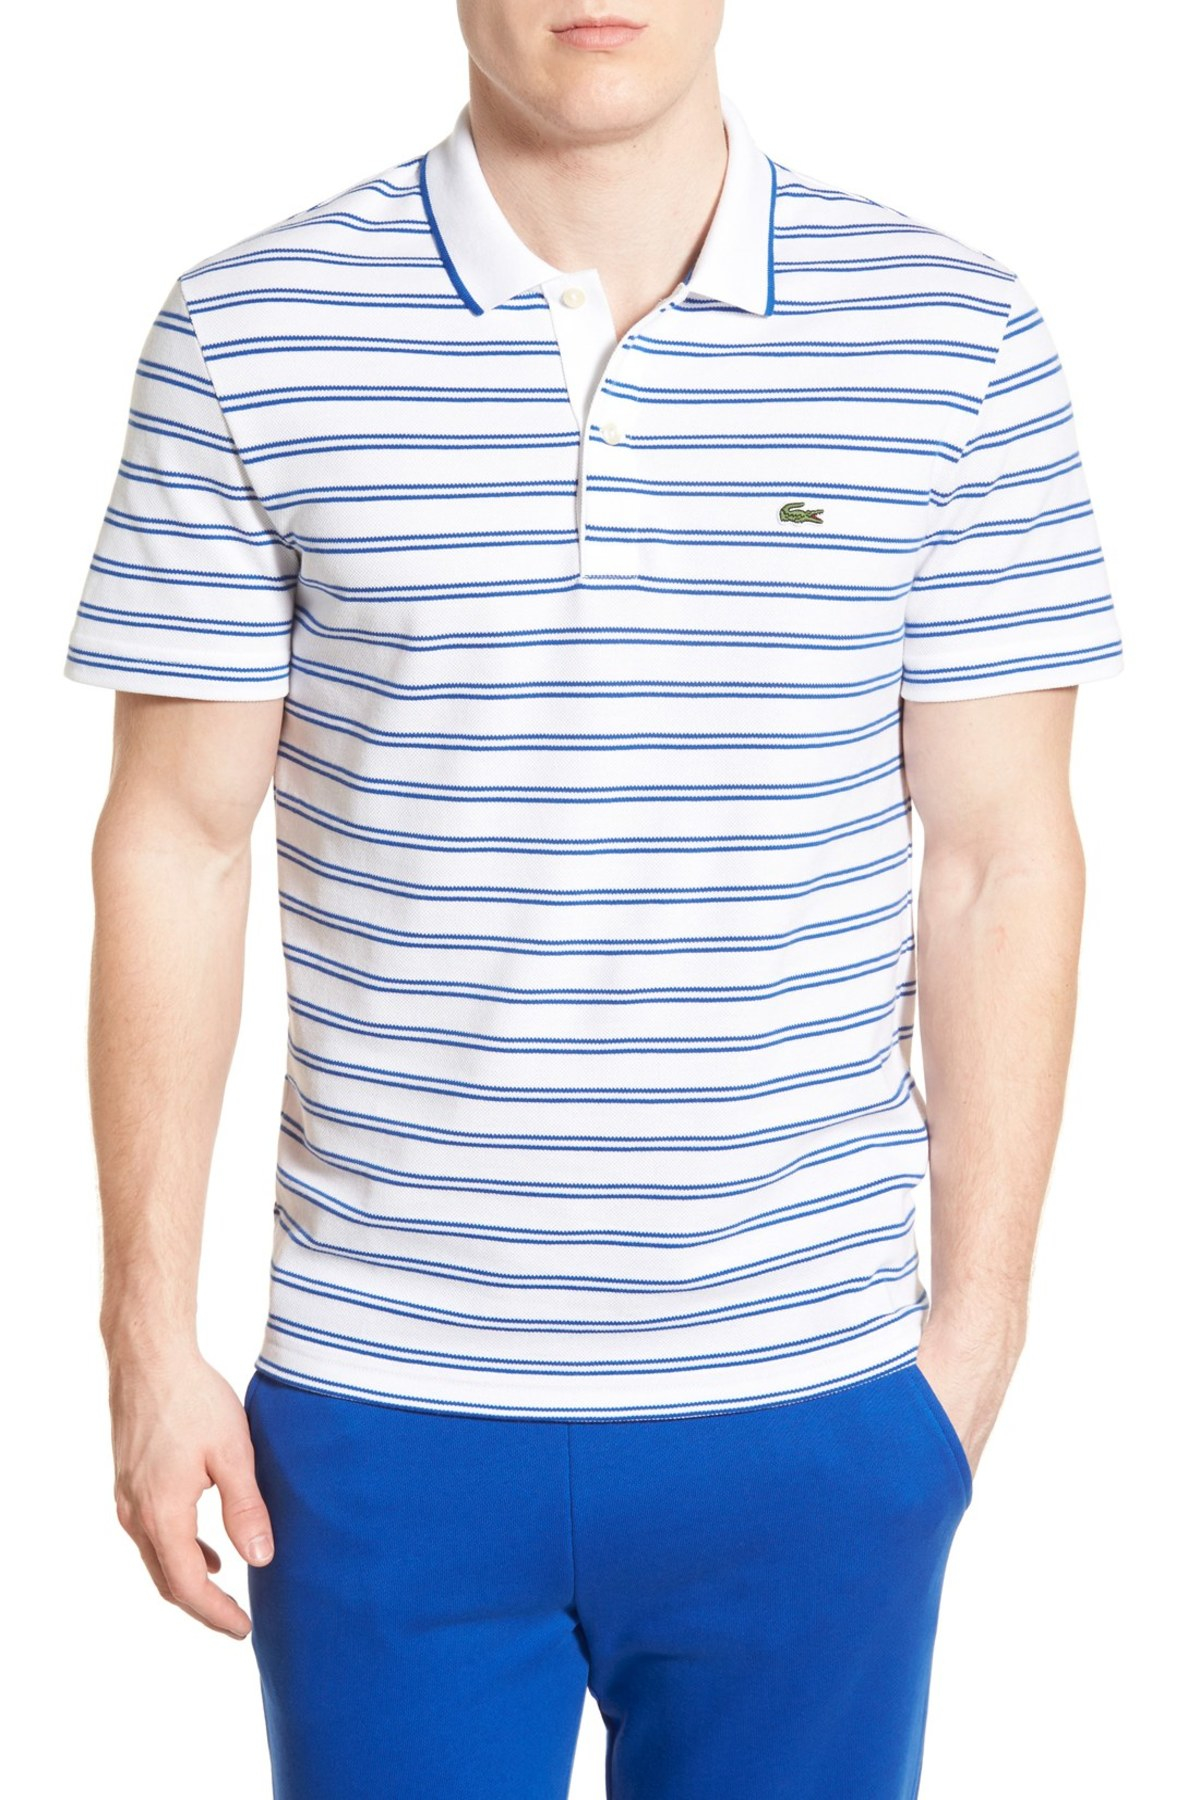 Lacoste stripe jersey pique polo in blue for men lyst for Lacoste stripe pique polo shirt